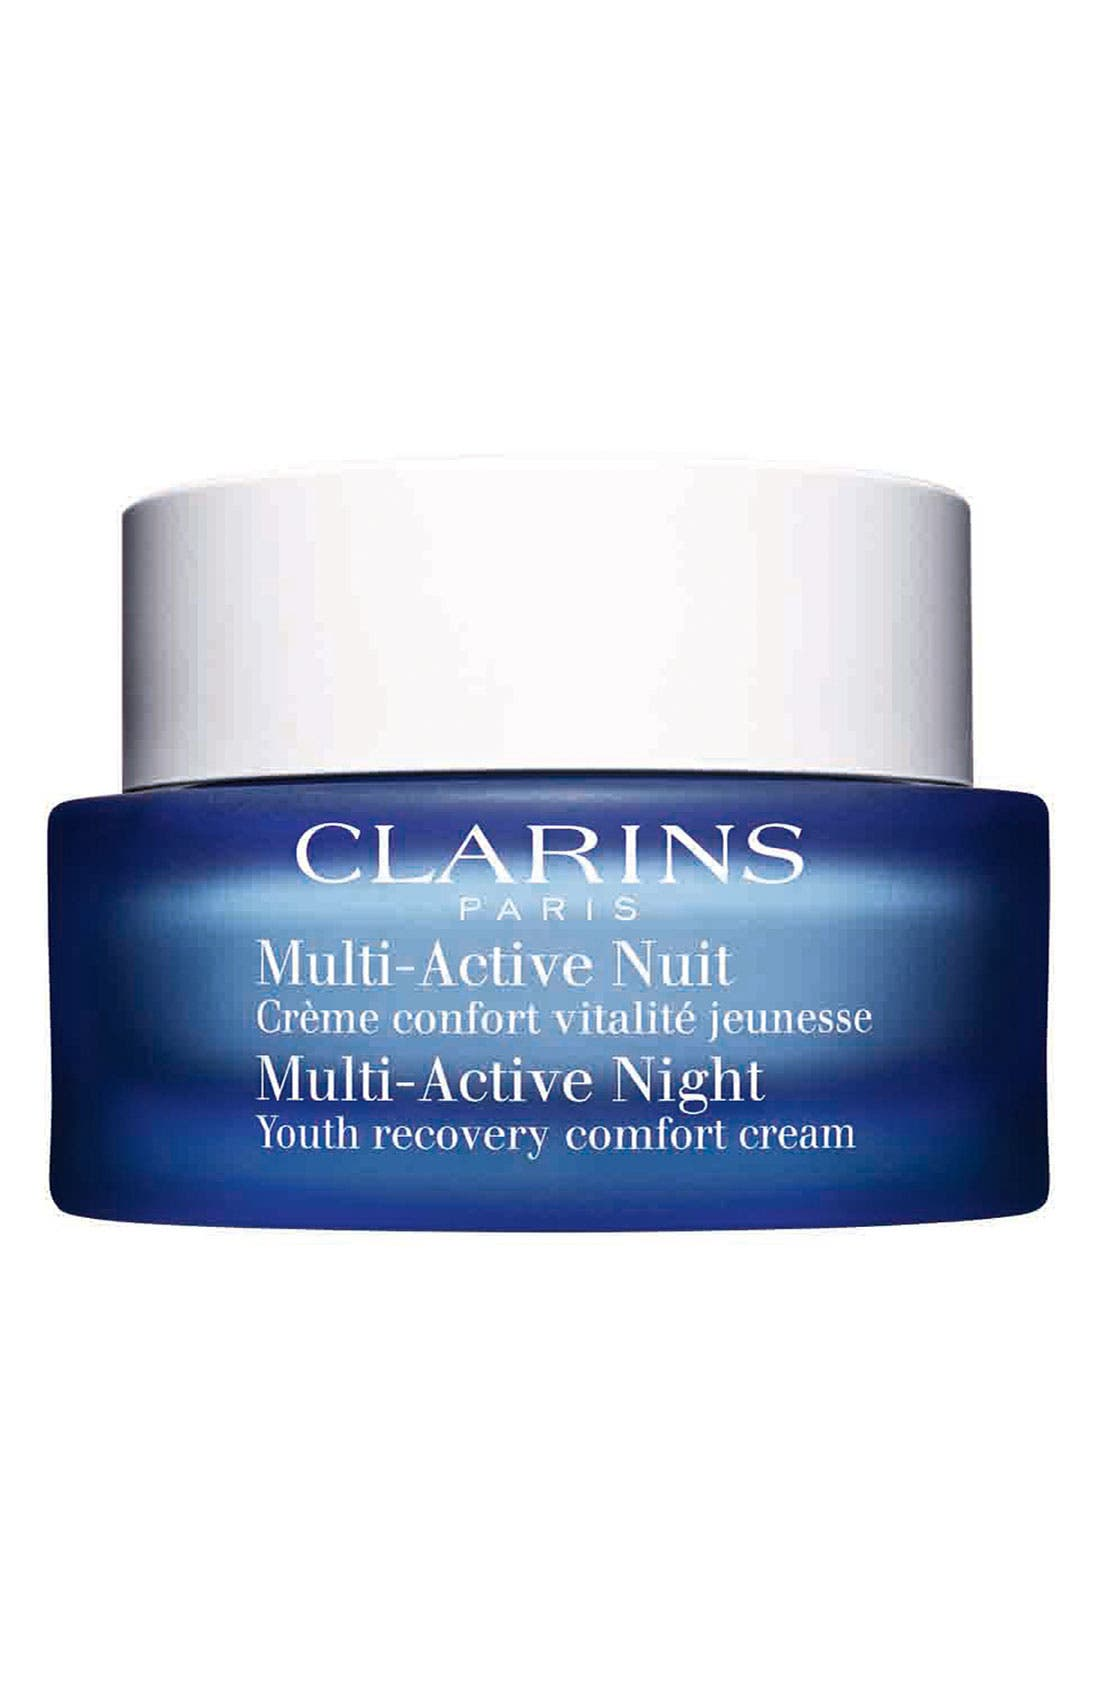 'Multi-Active' Night Youth Recovery Comfort Cream,                             Main thumbnail 1, color,